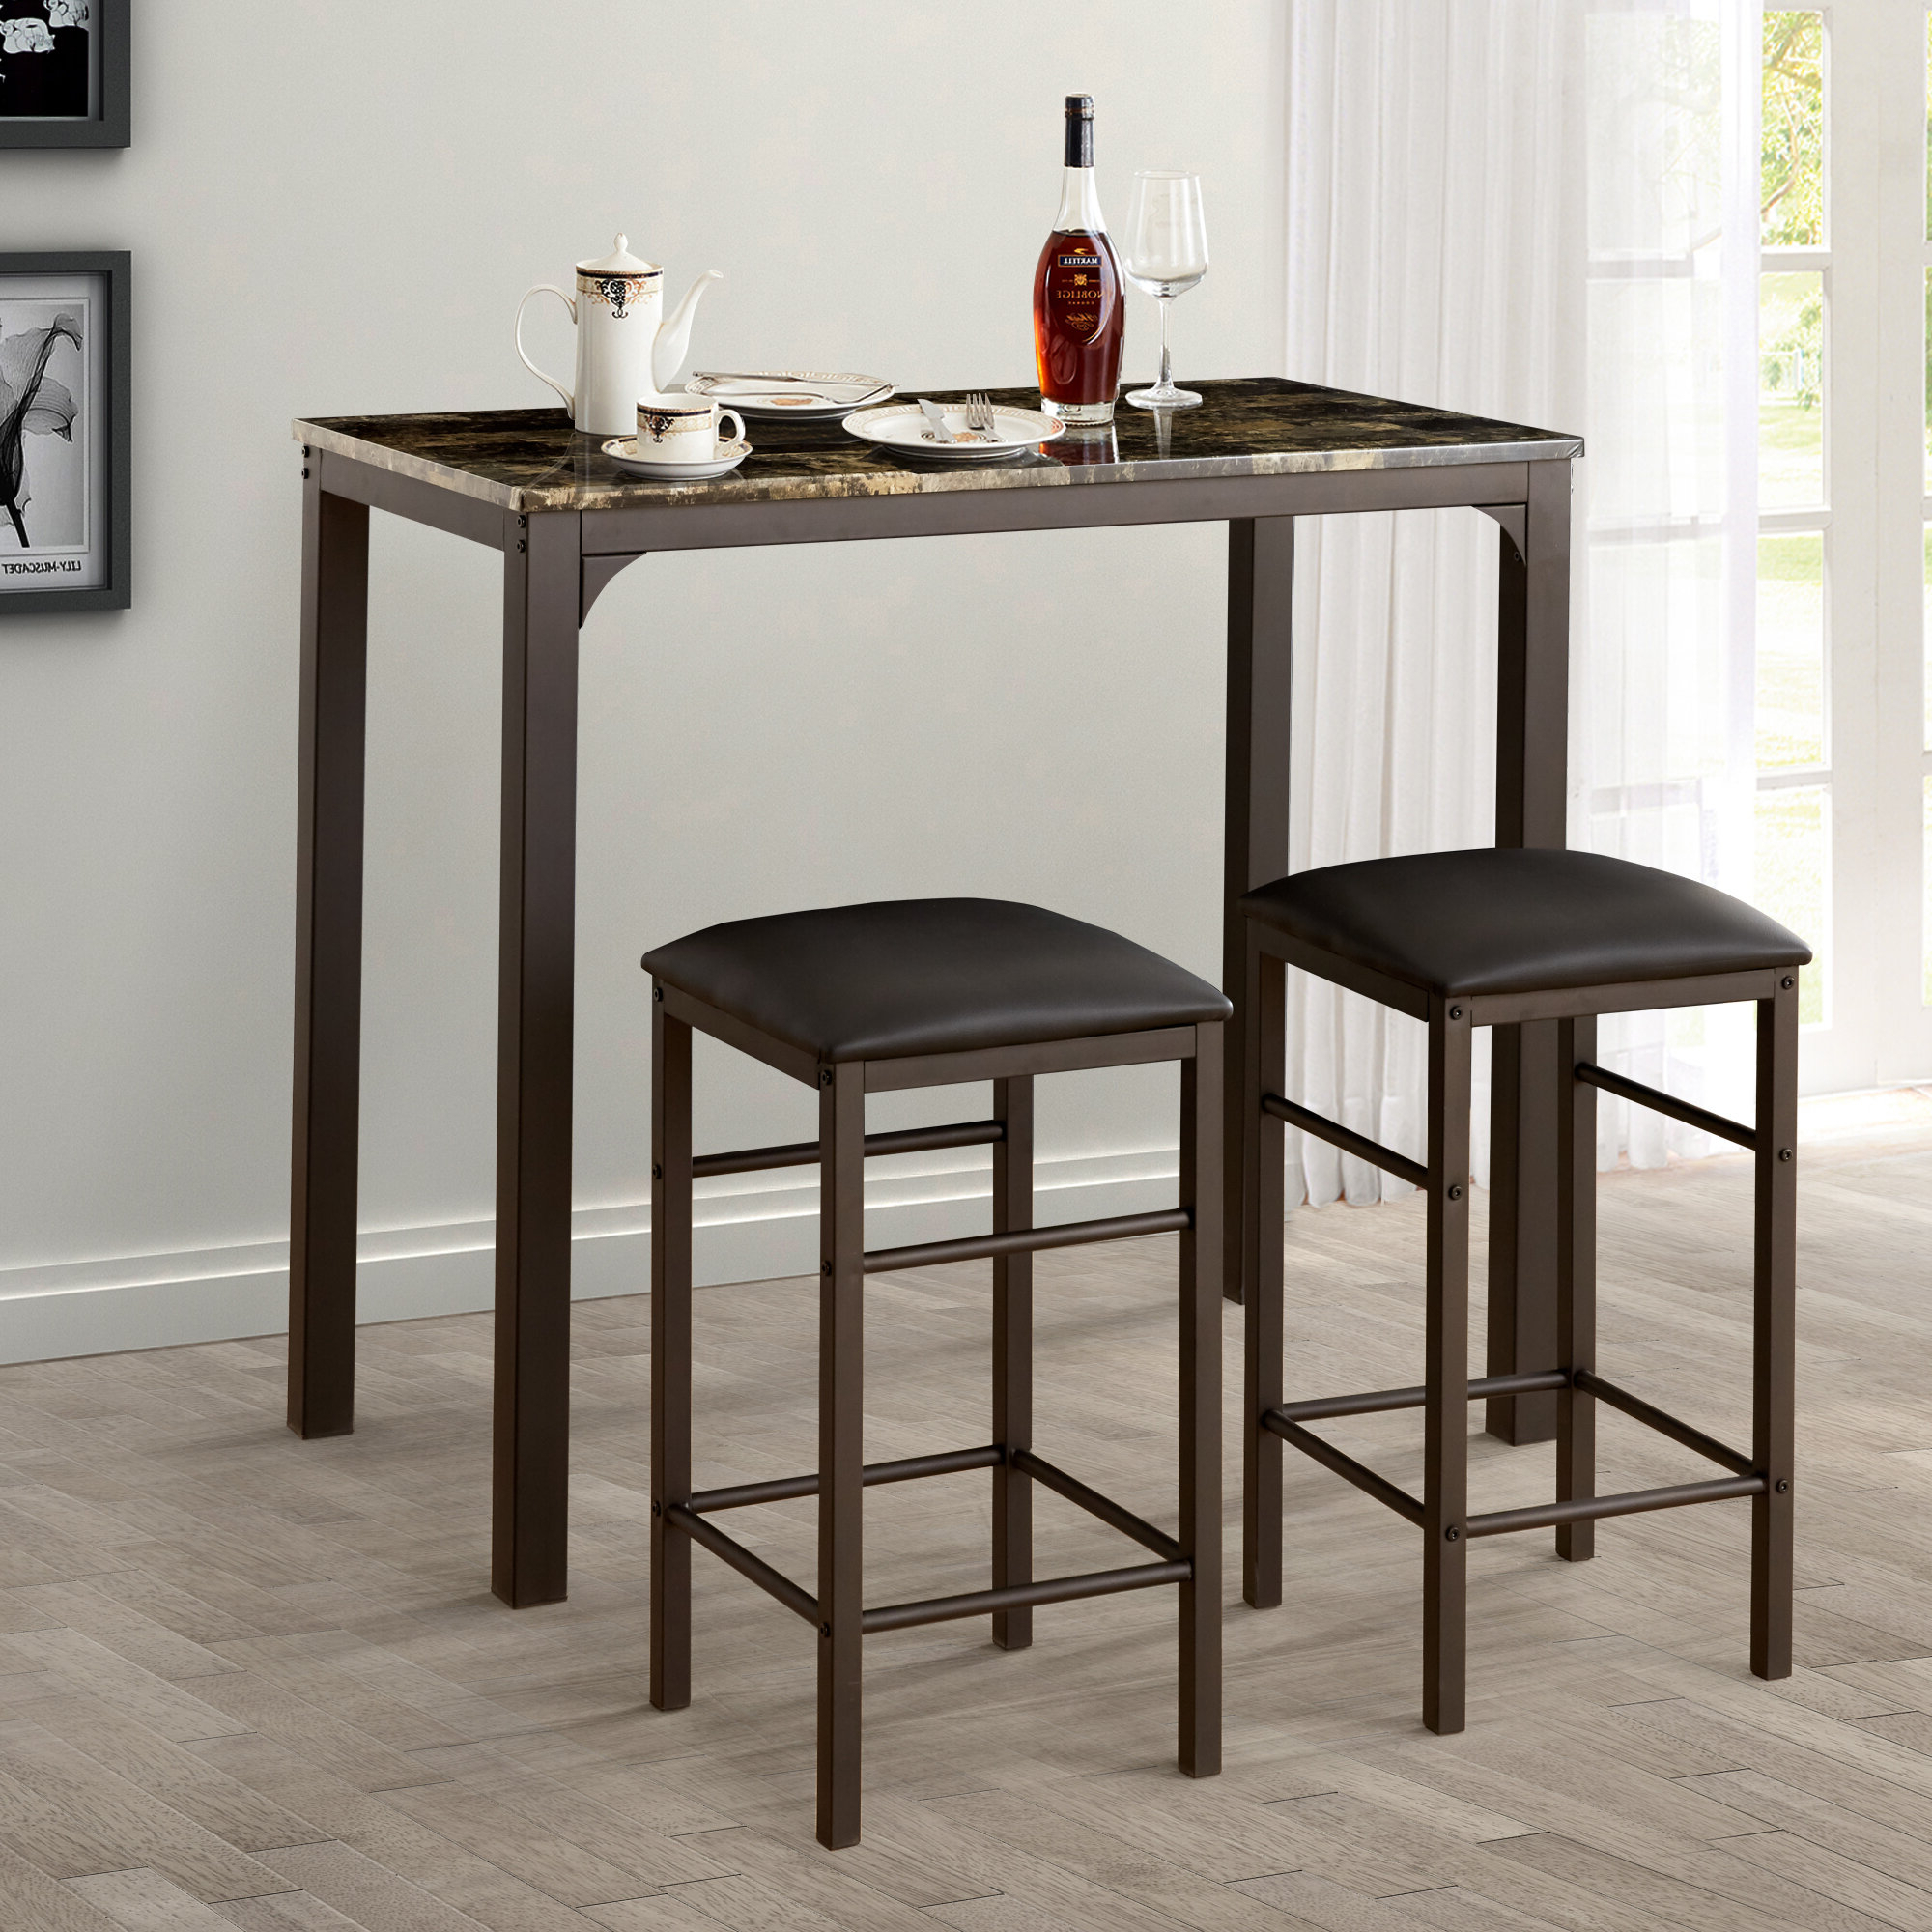 Lillard 3 Piece Breakfast Nook Dining Set For Latest Miskell 3 Piece Dining Sets (Gallery 3 of 20)